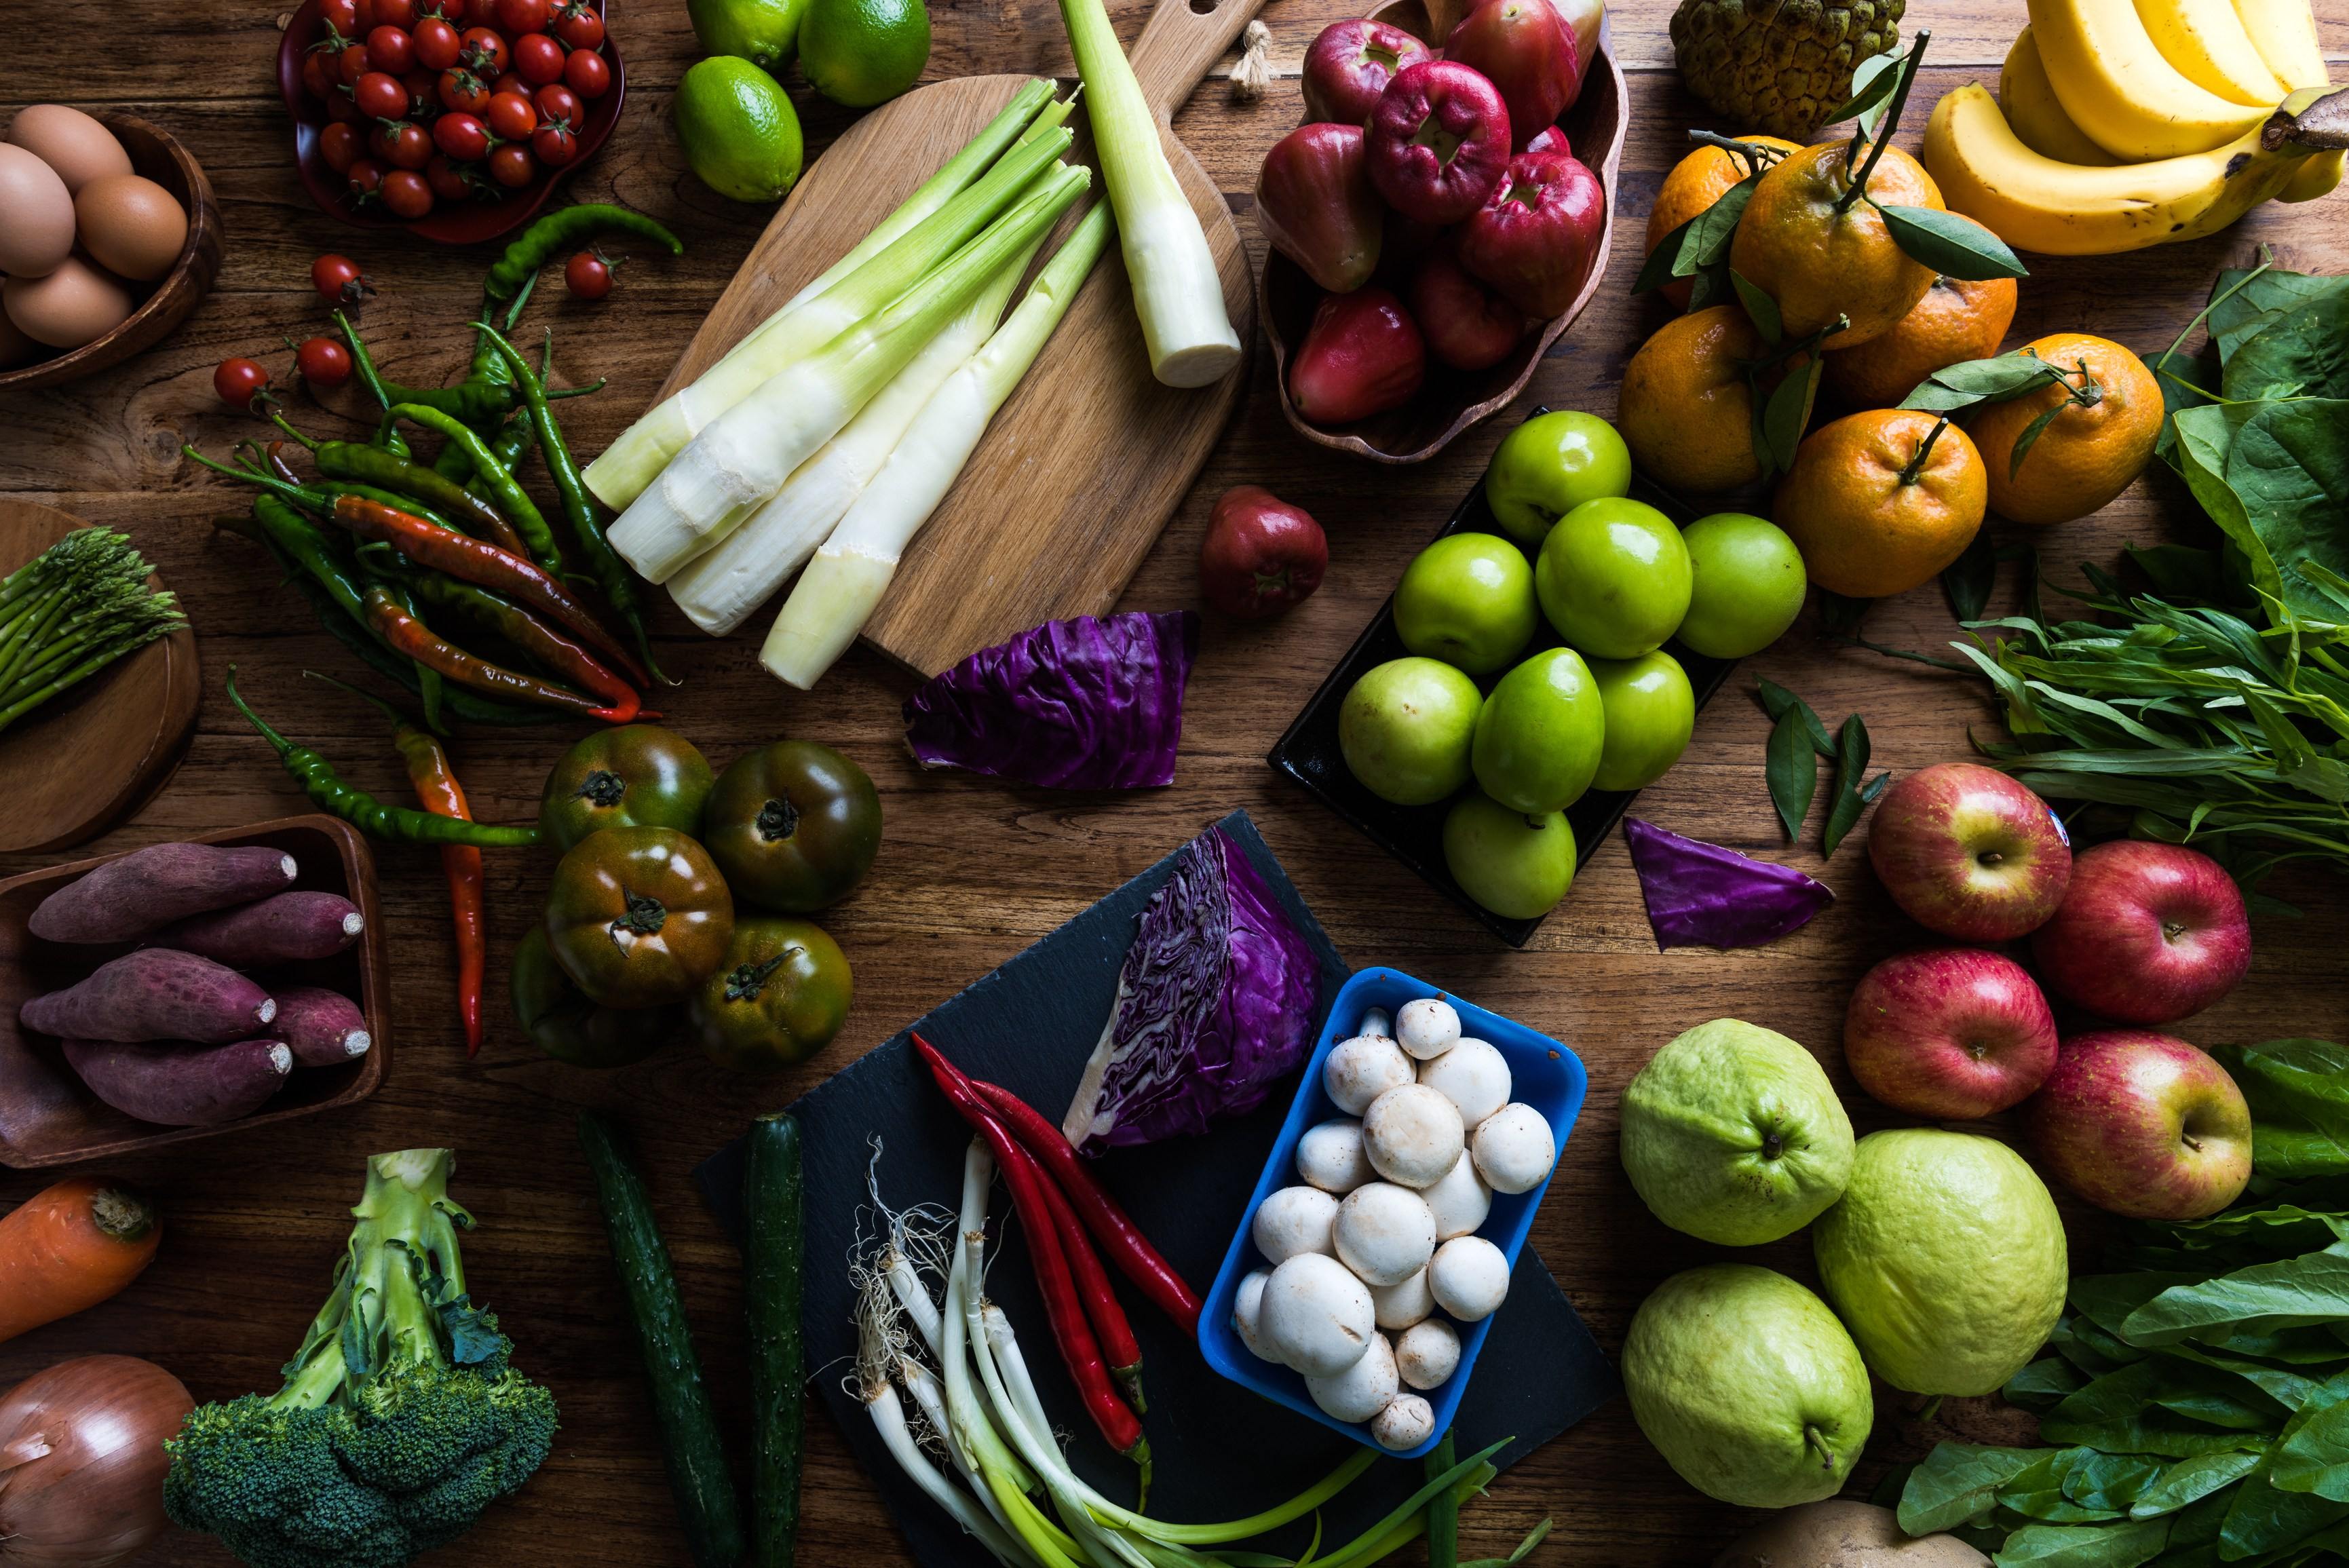 Spring Cleaning Rules for Healthy Eating